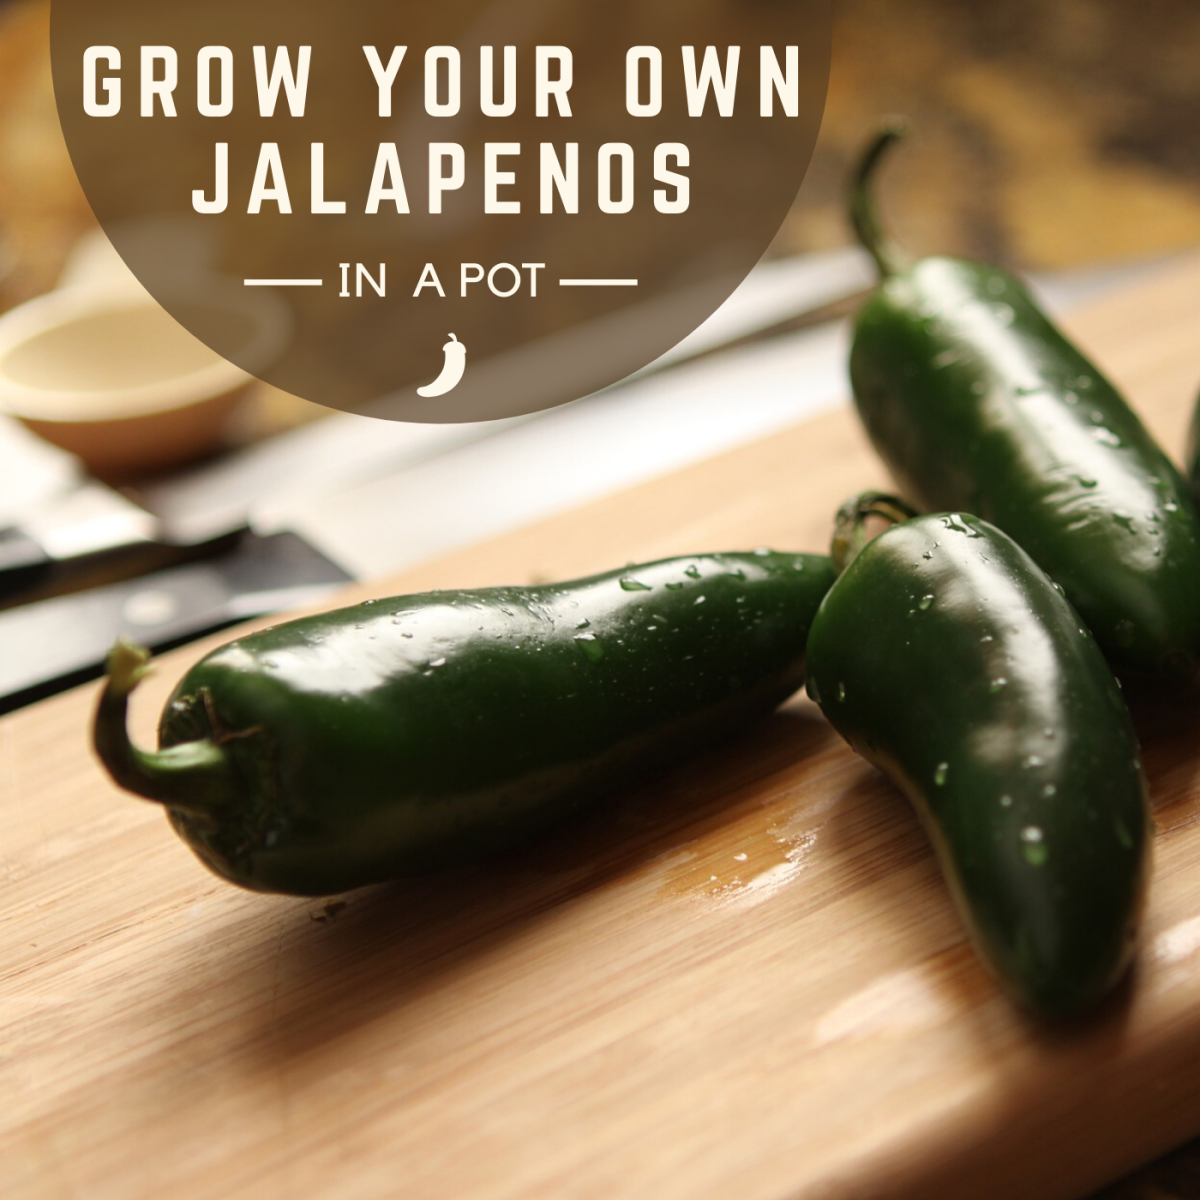 How to Grow Jalapeños in a Pot or Container From Seed